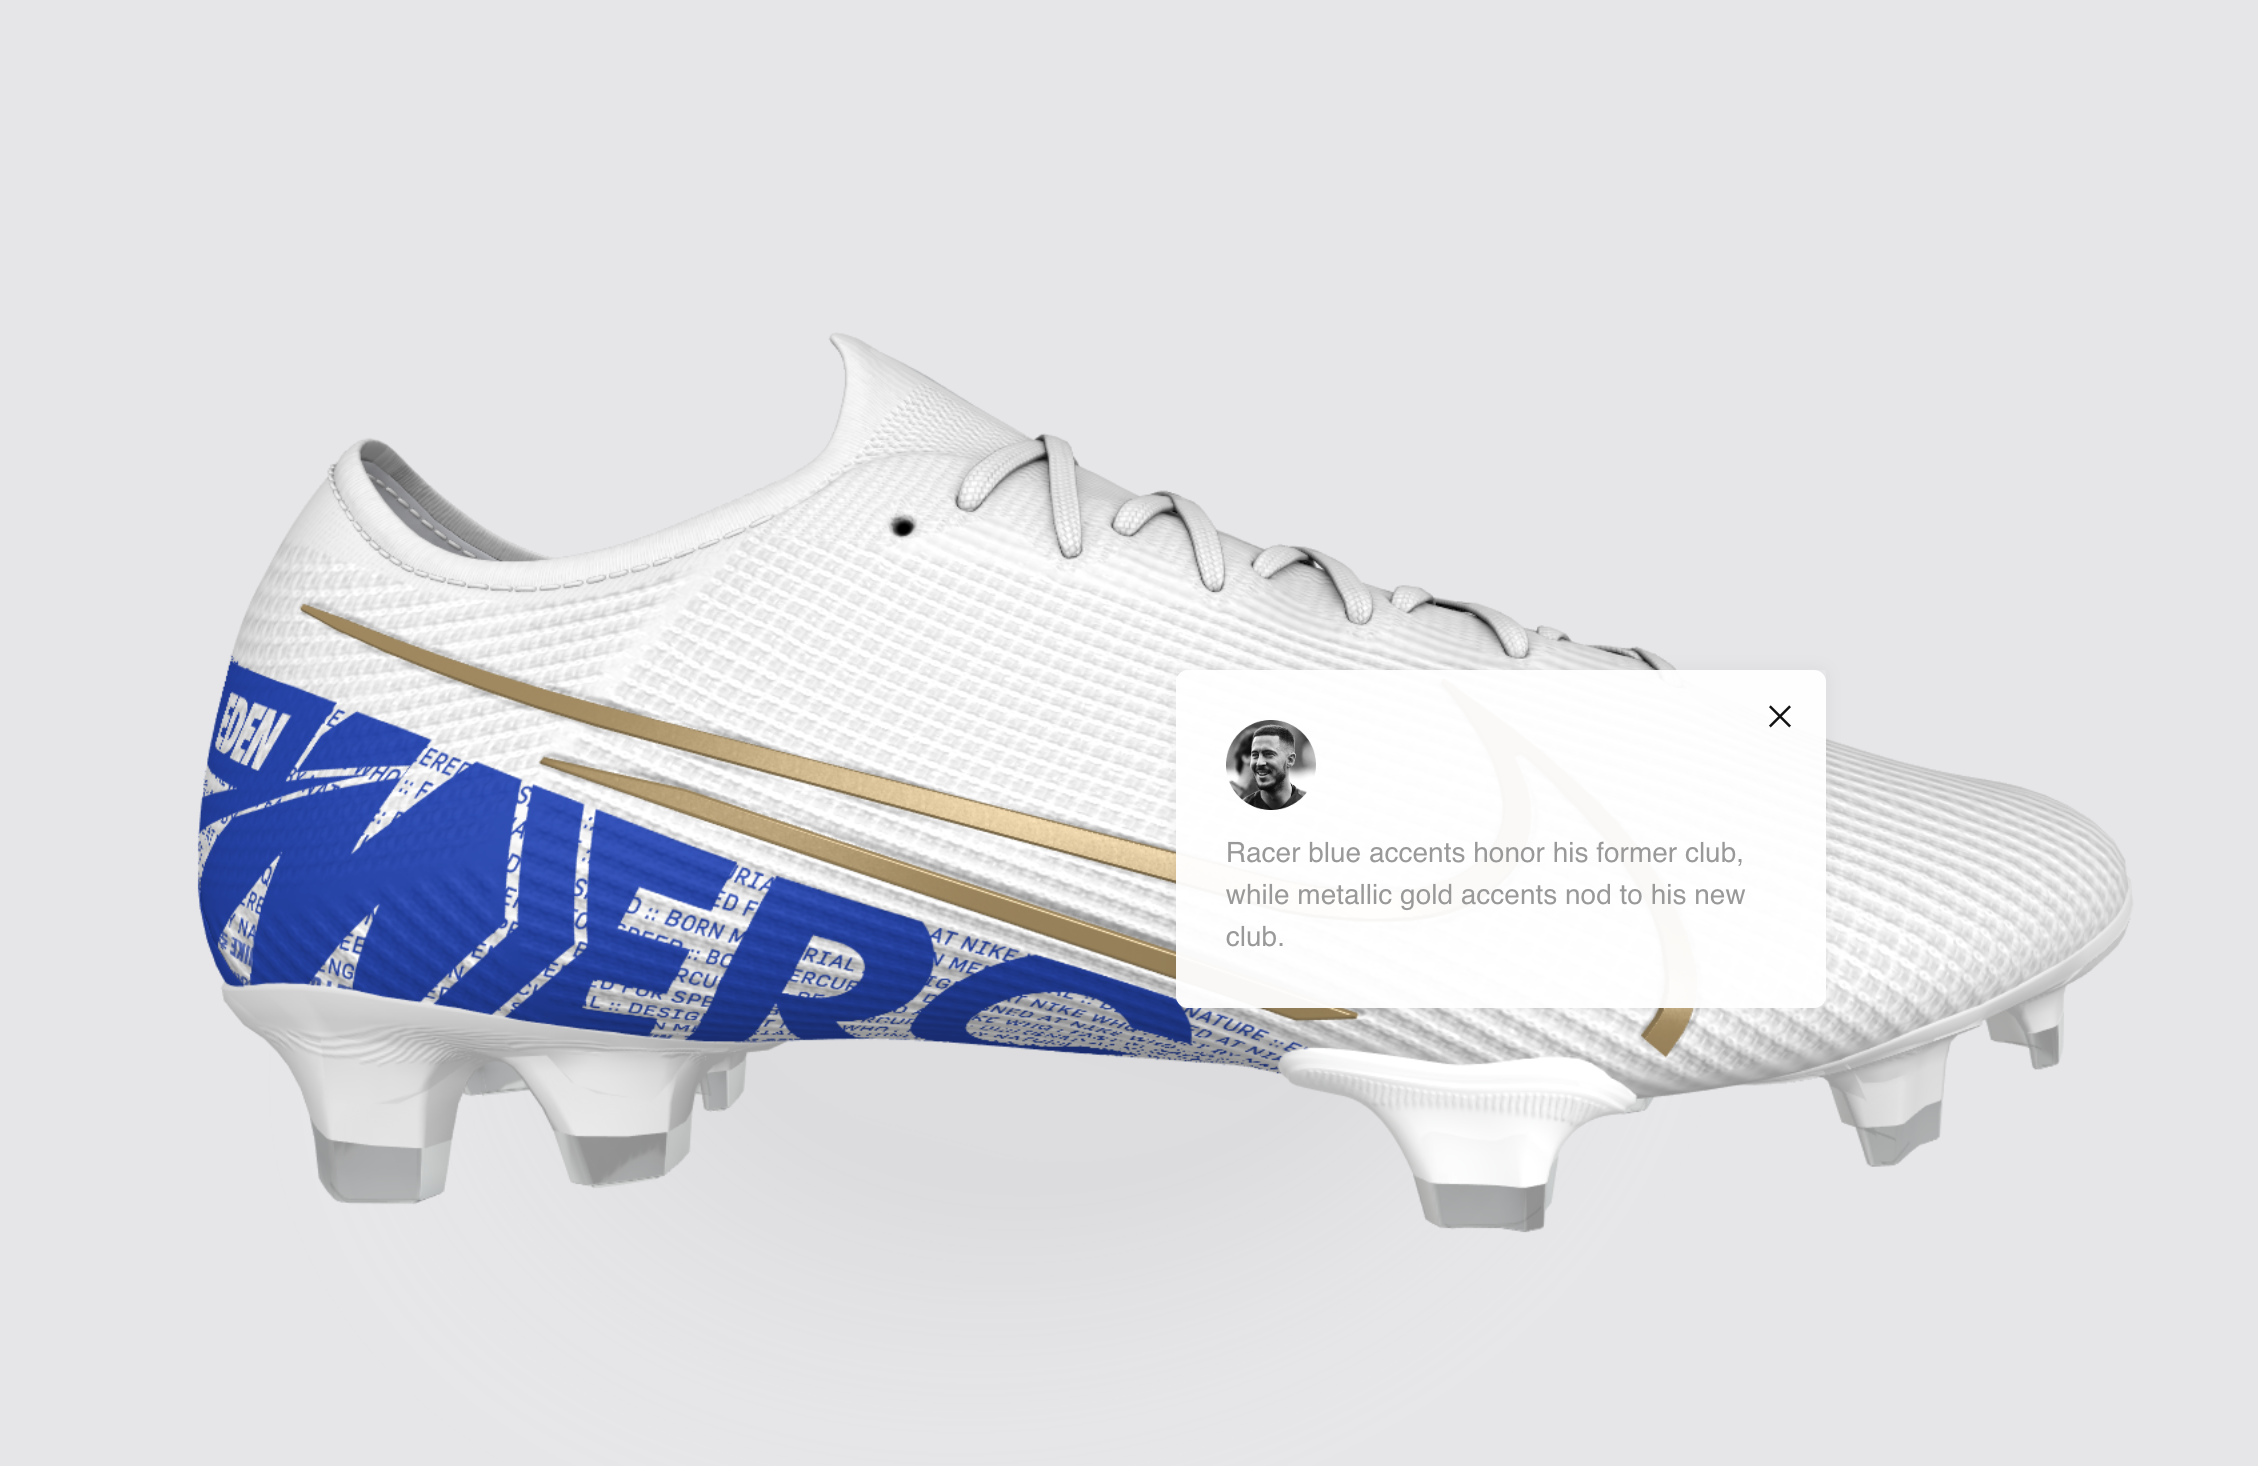 Real Madrid's Eden Hazard pays tribute to Chelsea with new custom Nike boots